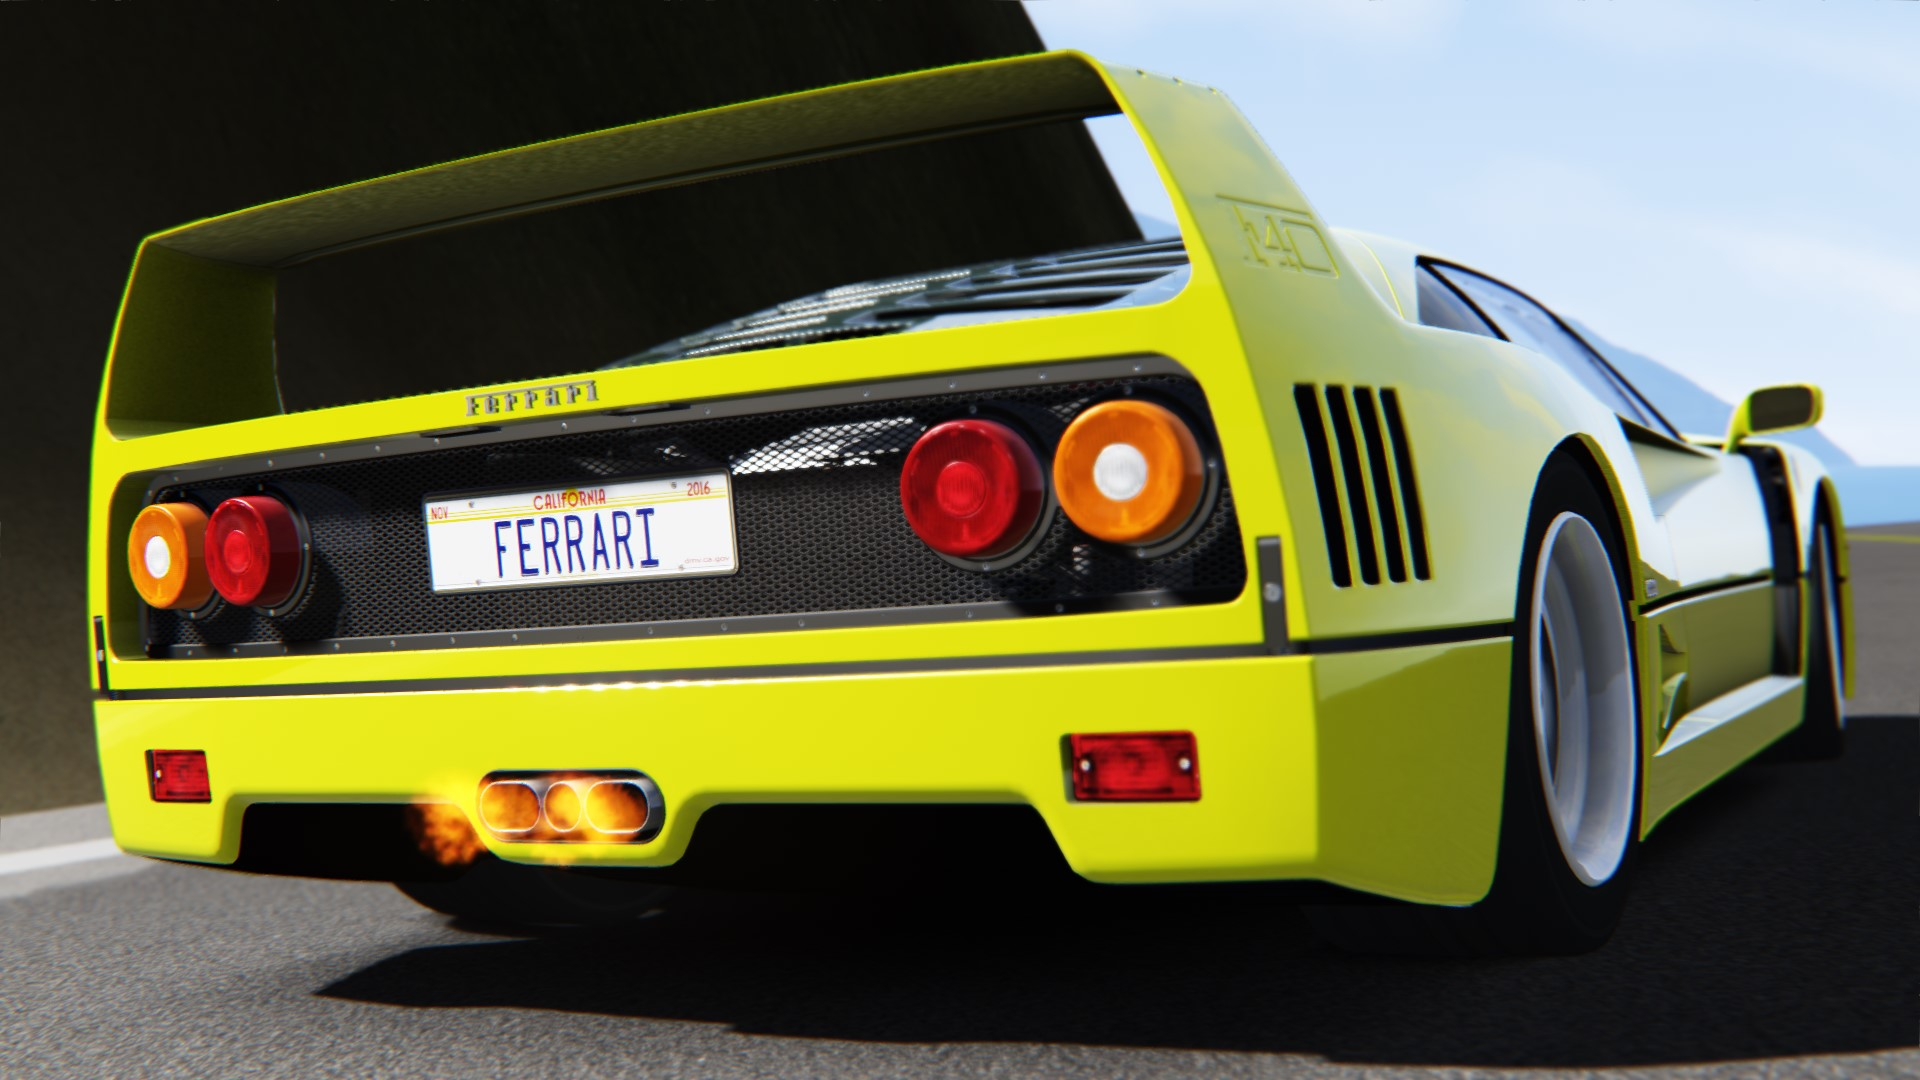 Screenshot_ferrari_f40_pacific_coast_31-10-116-18-26-11.jpg